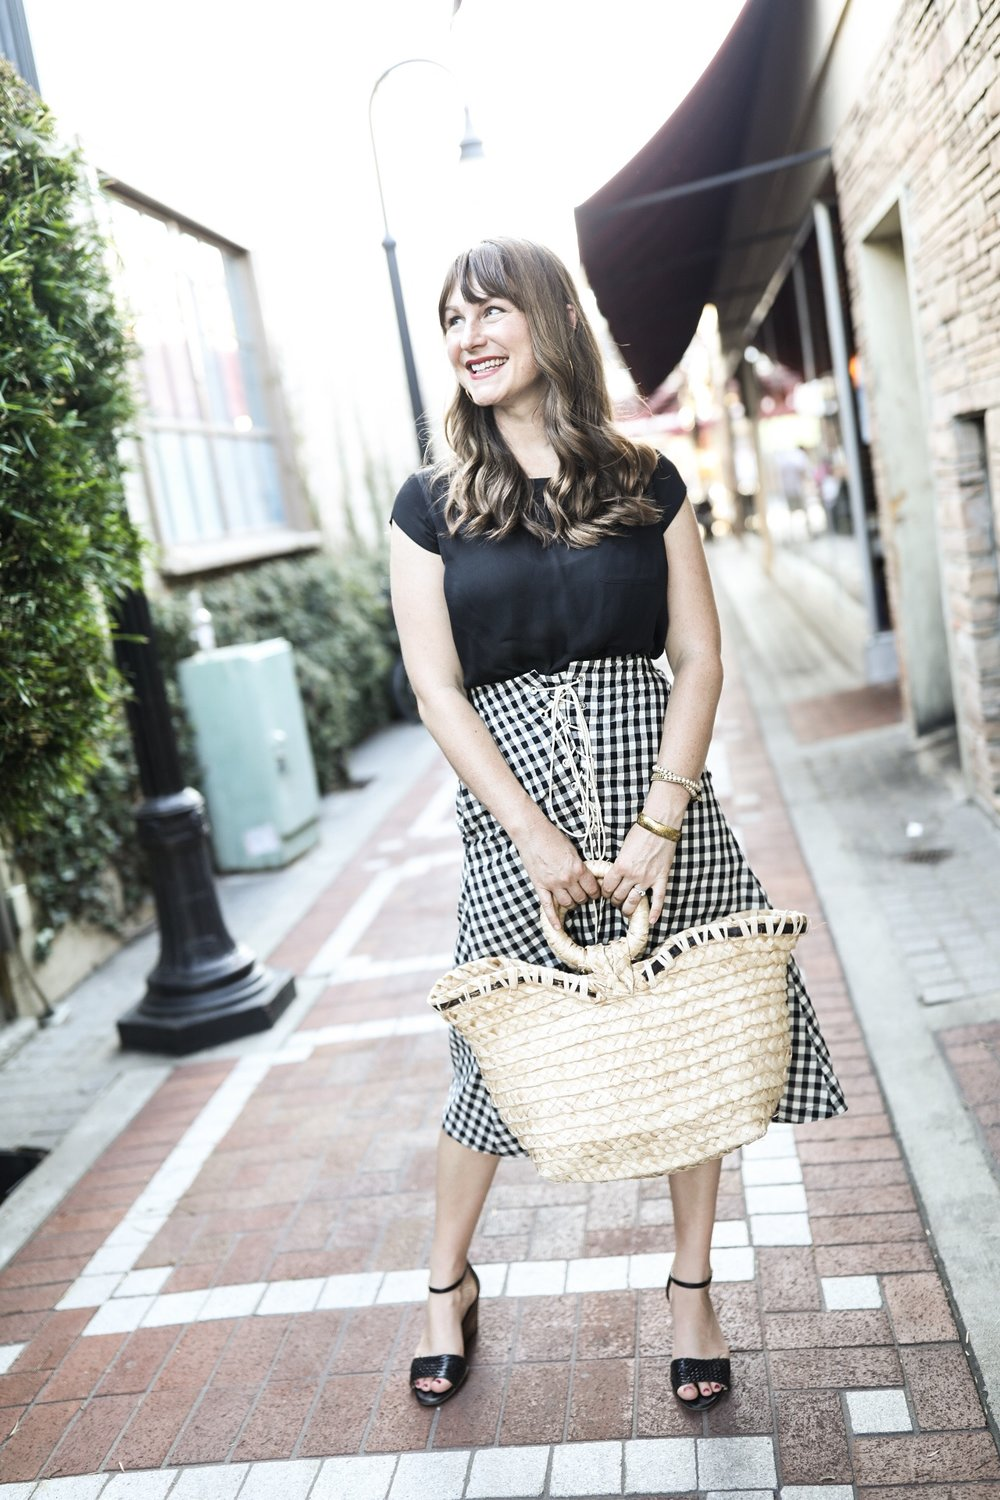 Ethical Outfit | Black and White Gingham Skirt by Eva Franco (Made in USA) | Birds of a Thread